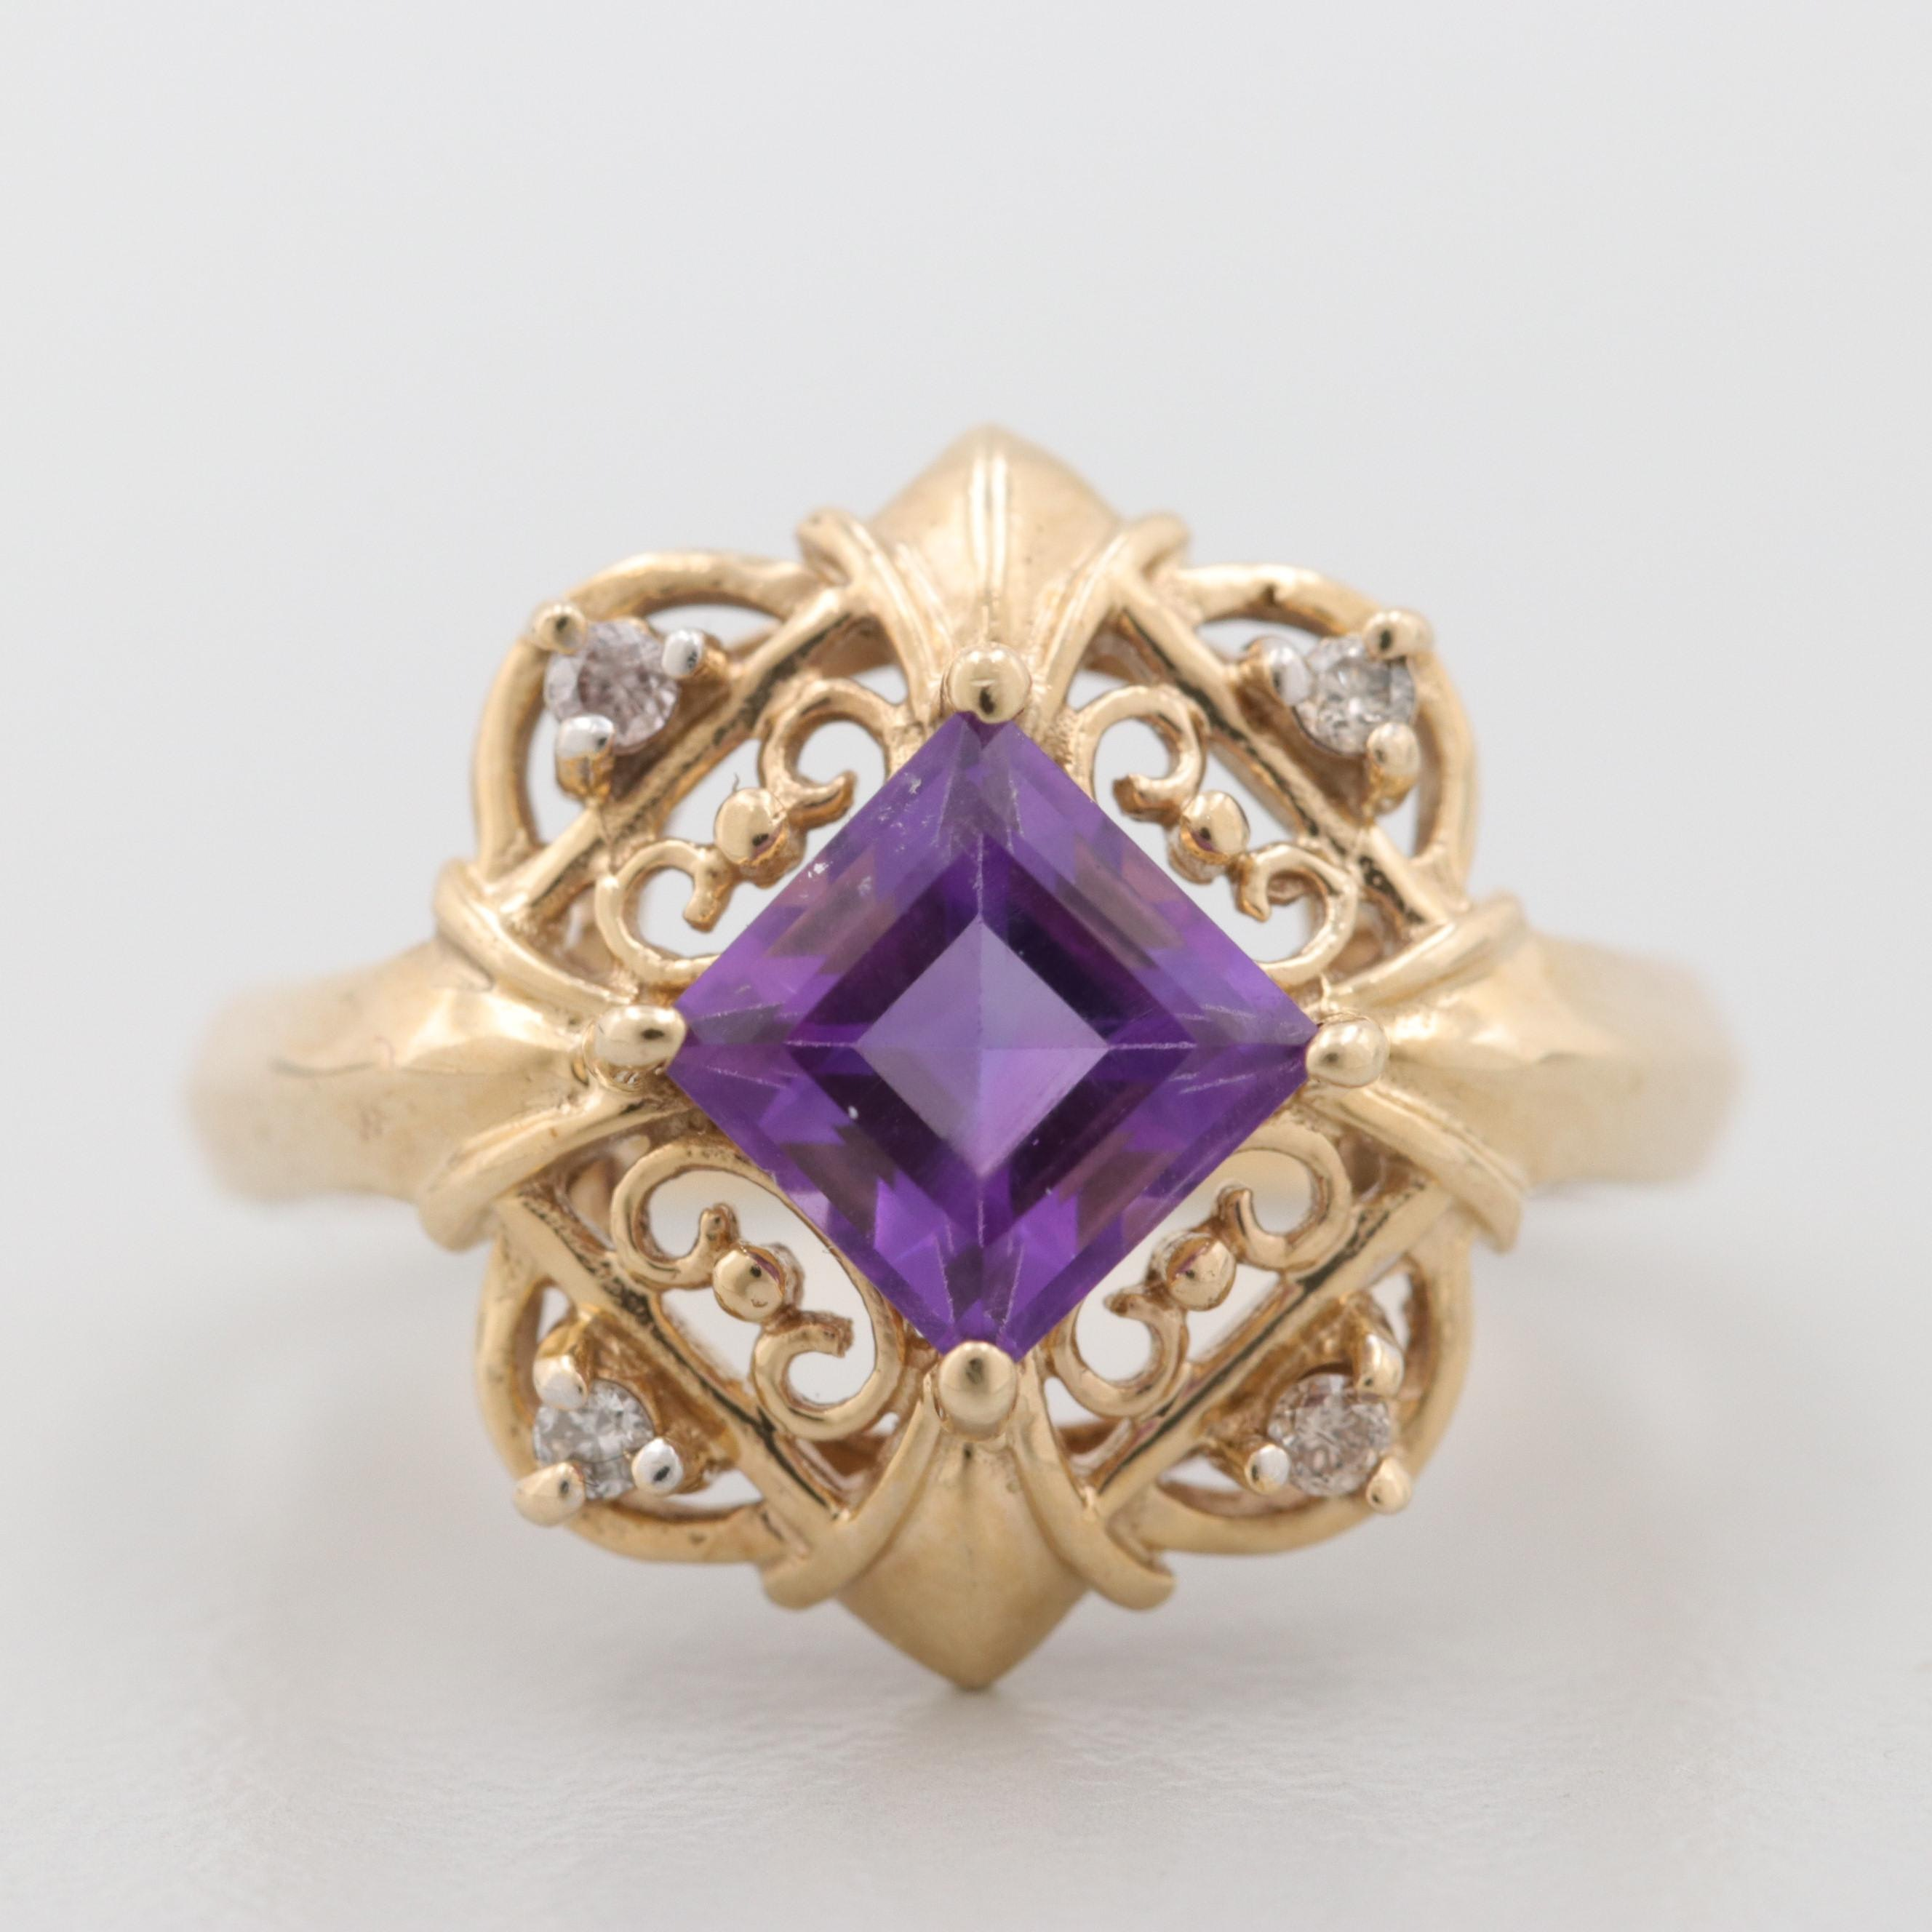 10K Yellow Gold Amethyst and Diamond Ornate Ring